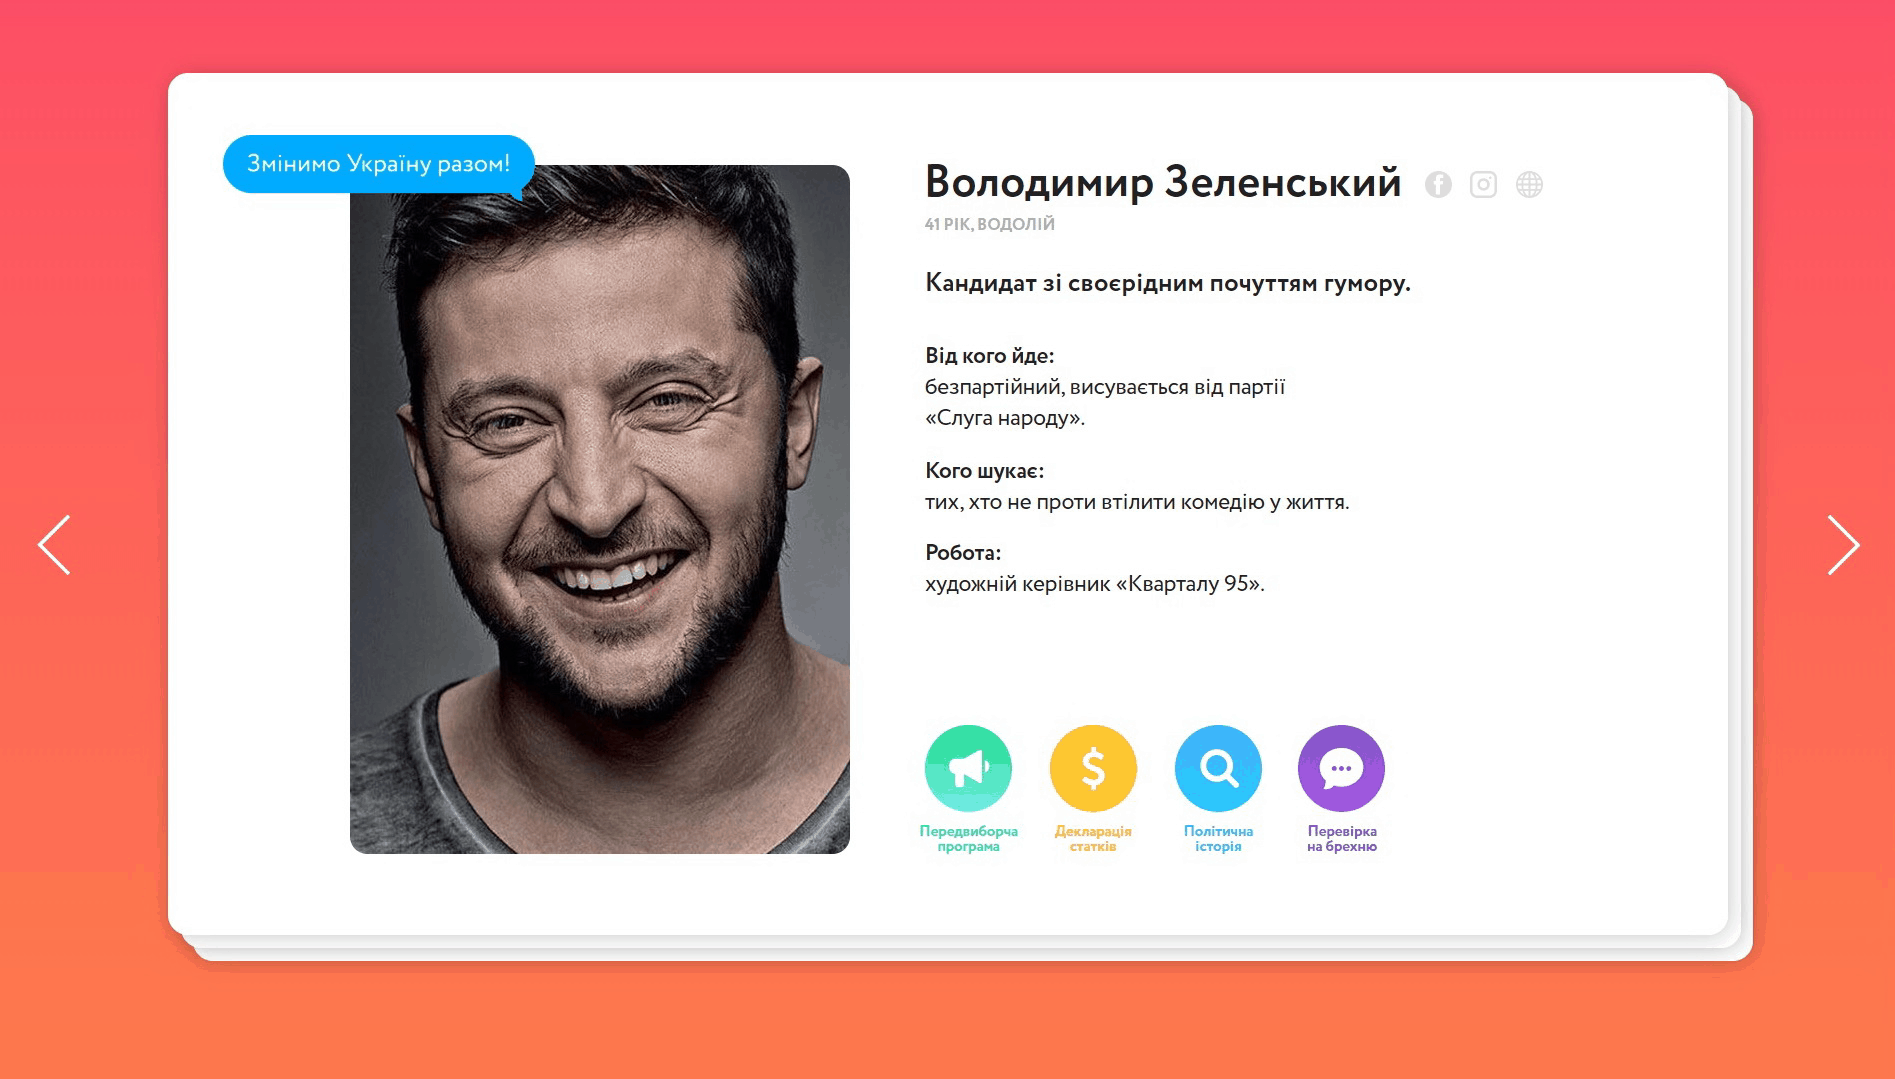 A profile of presidential candidate Volodimir Zelensky presented in the style of Tinder